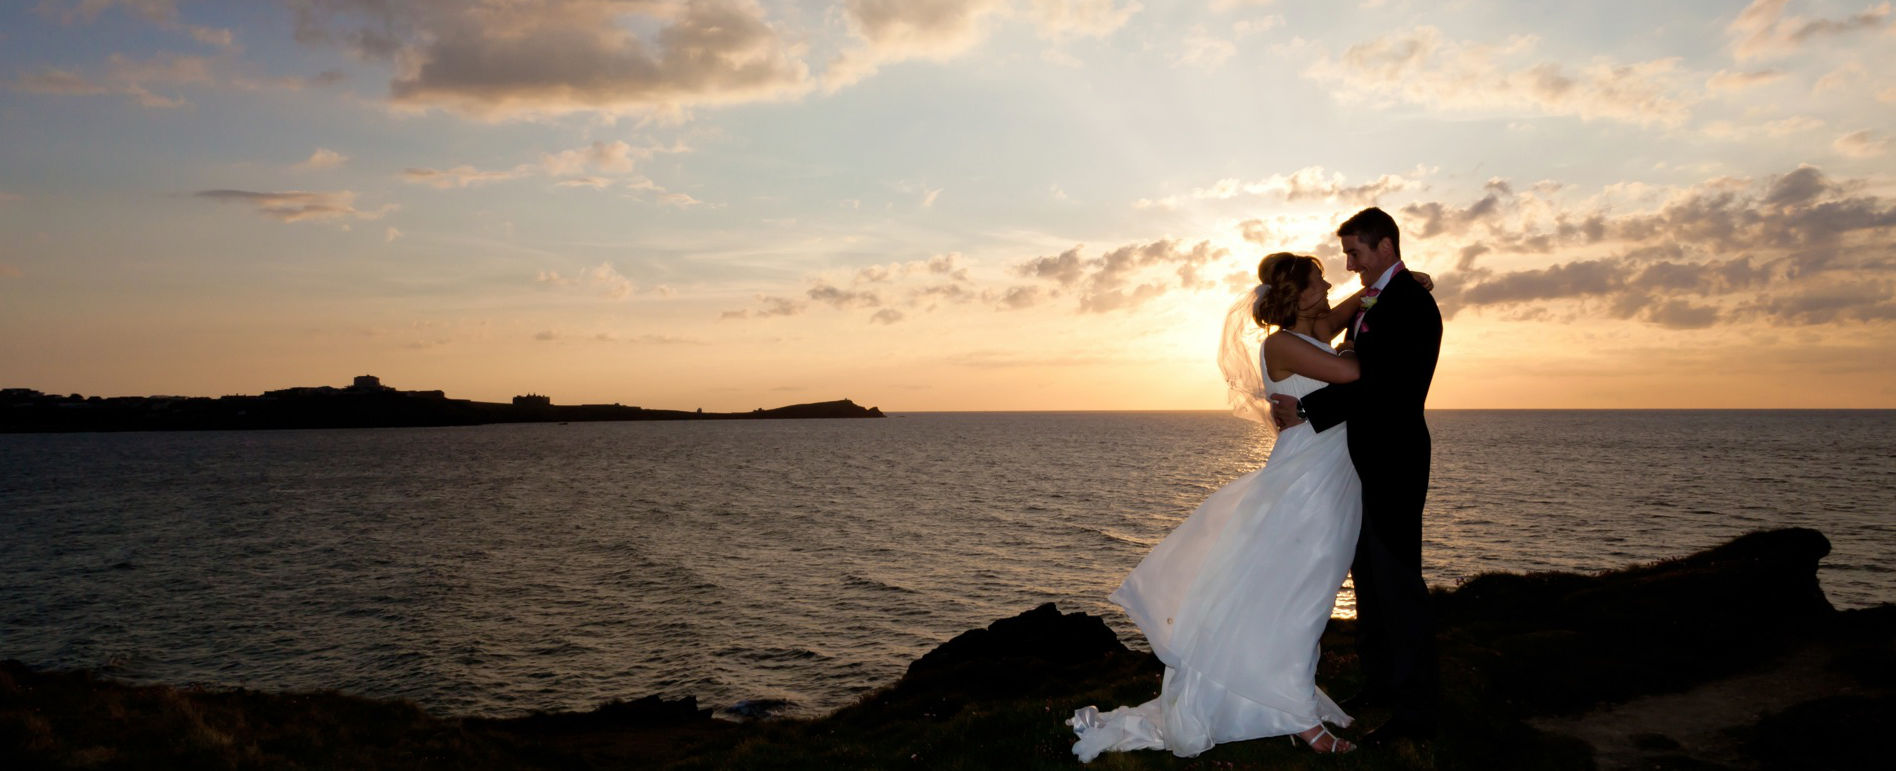 Wedding-photography-cornwall1